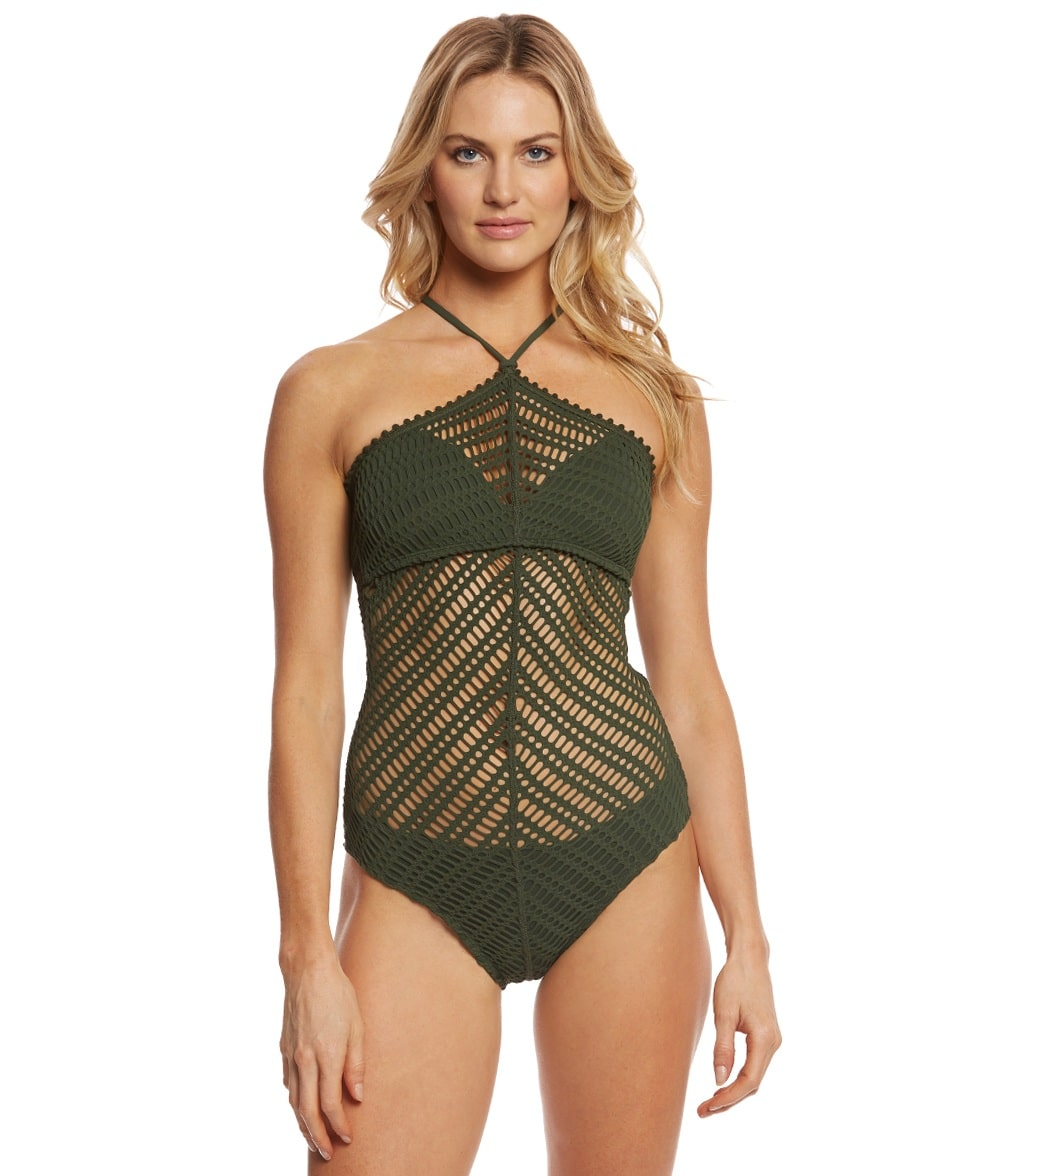 b725bdd7db7 Robin Piccone Sophia High Neck One Piece Swimsuit at SwimOutlet.com - Free  Shipping